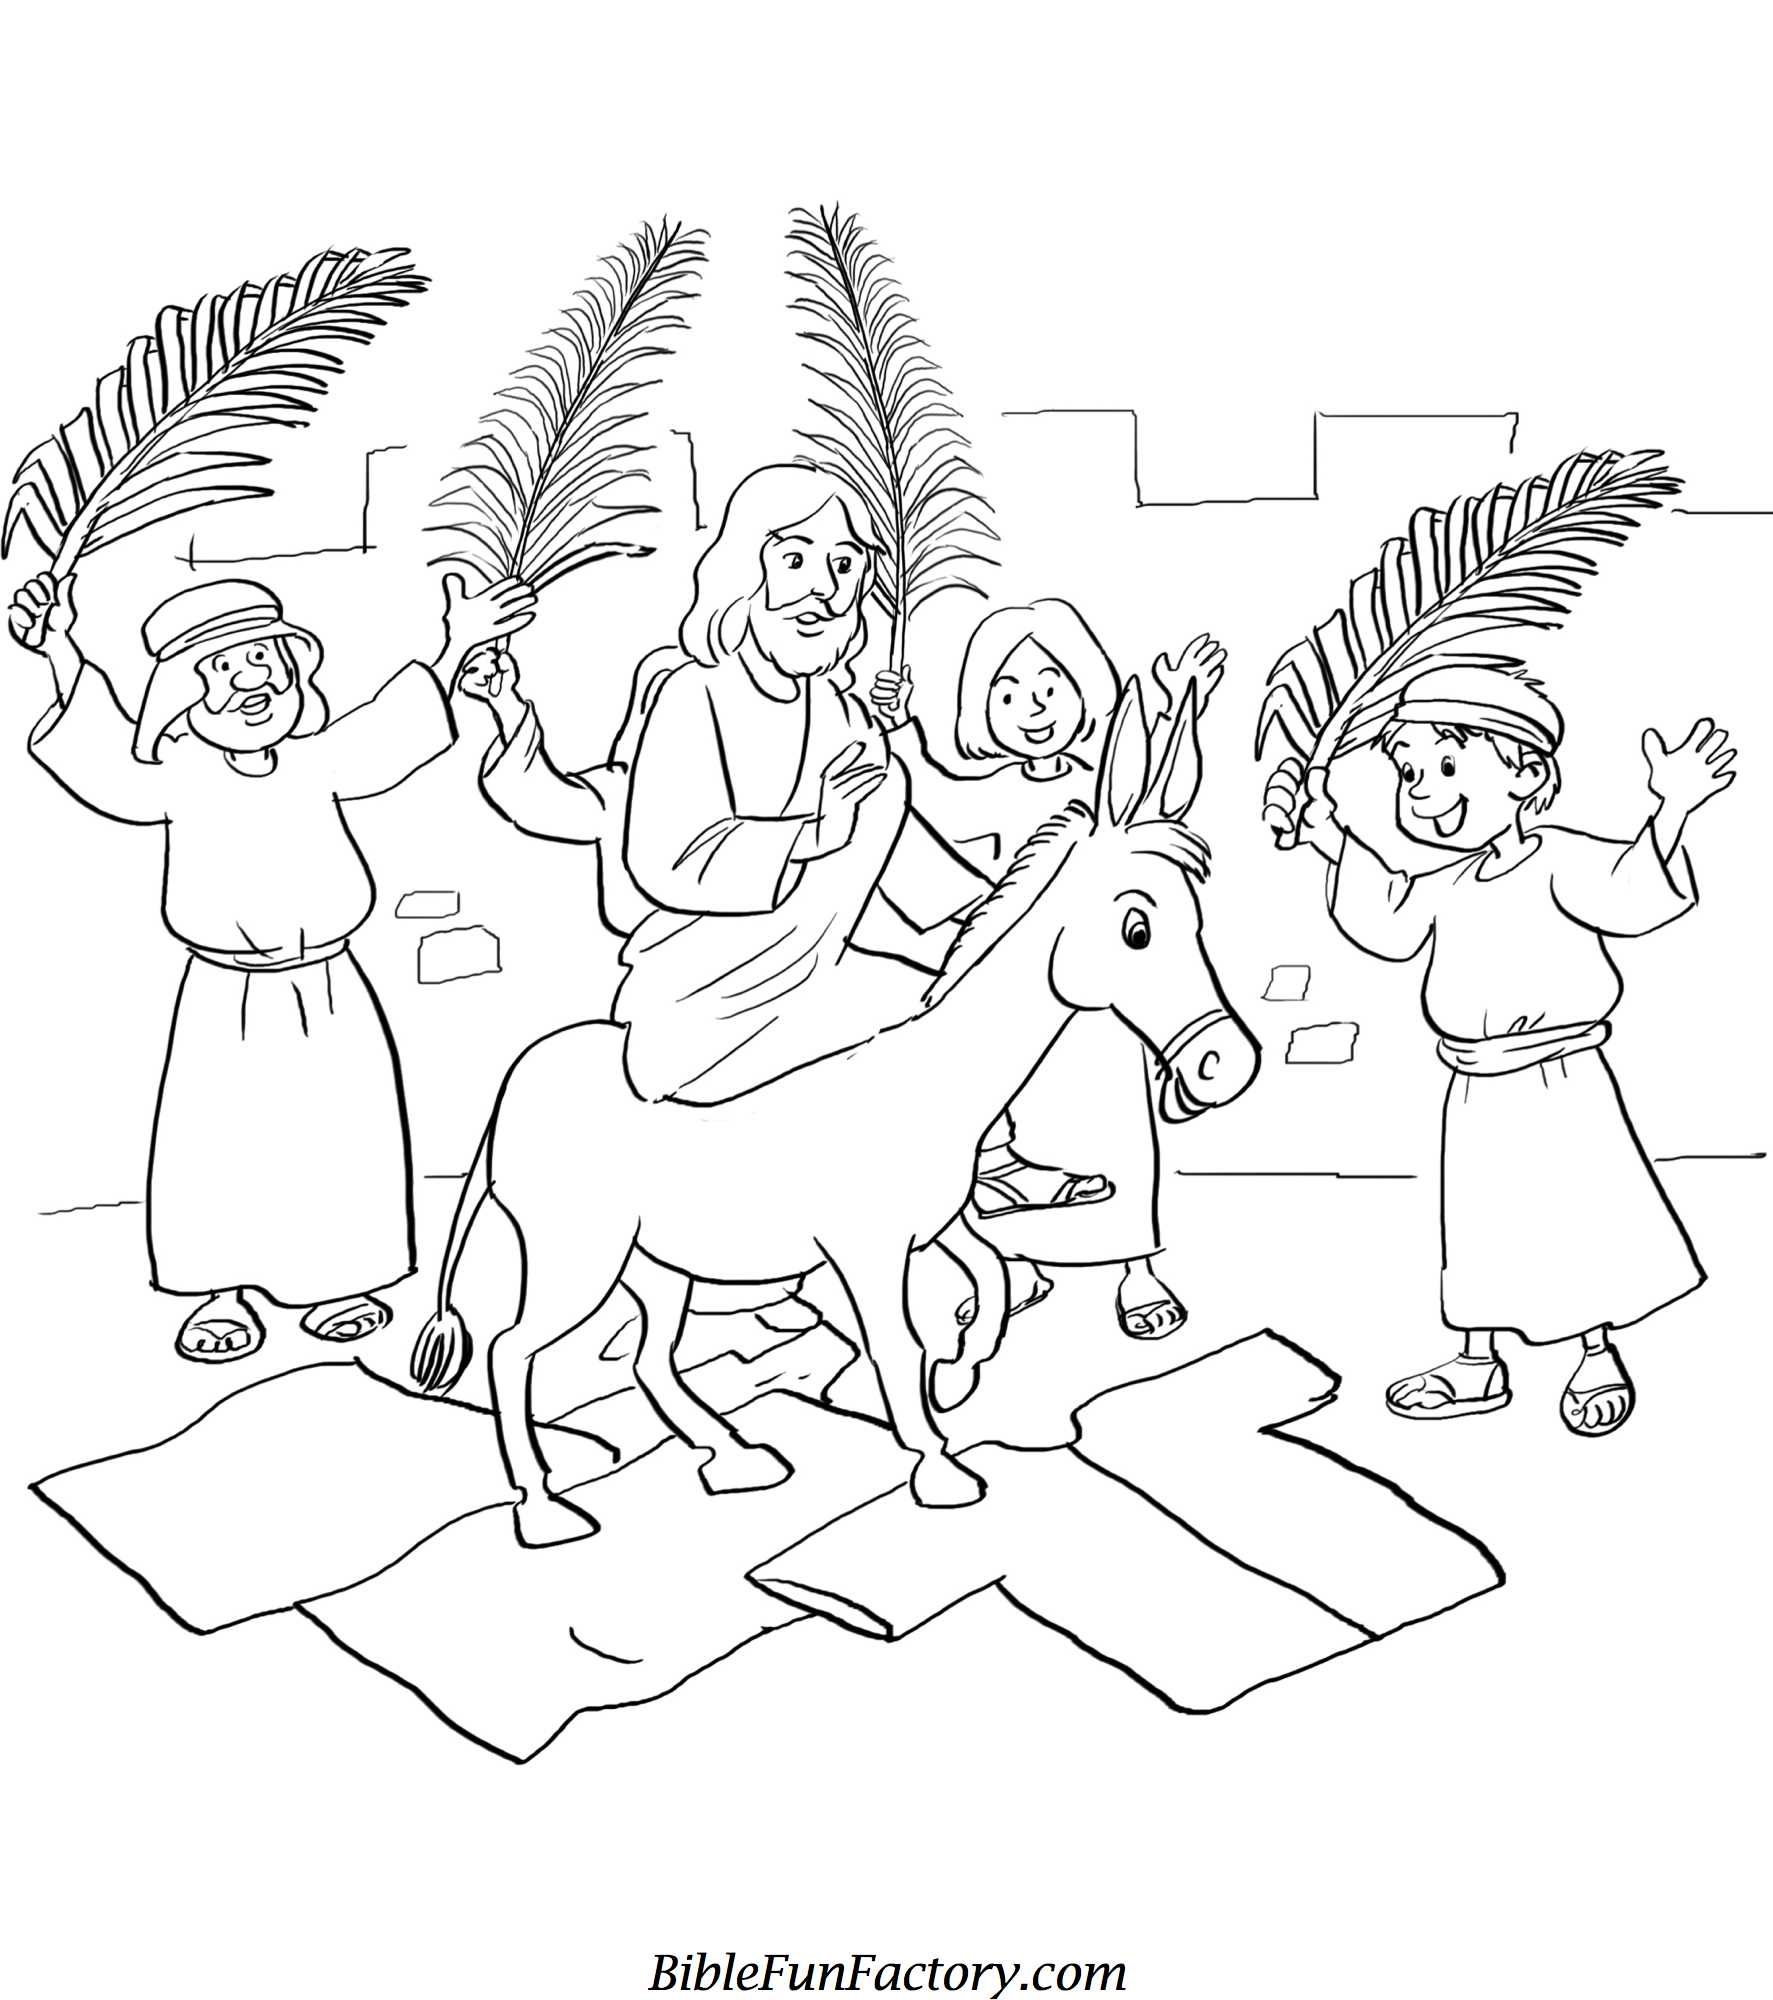 Free palm sunday coloring sheets bible lessons games and activities biblefunfactory com